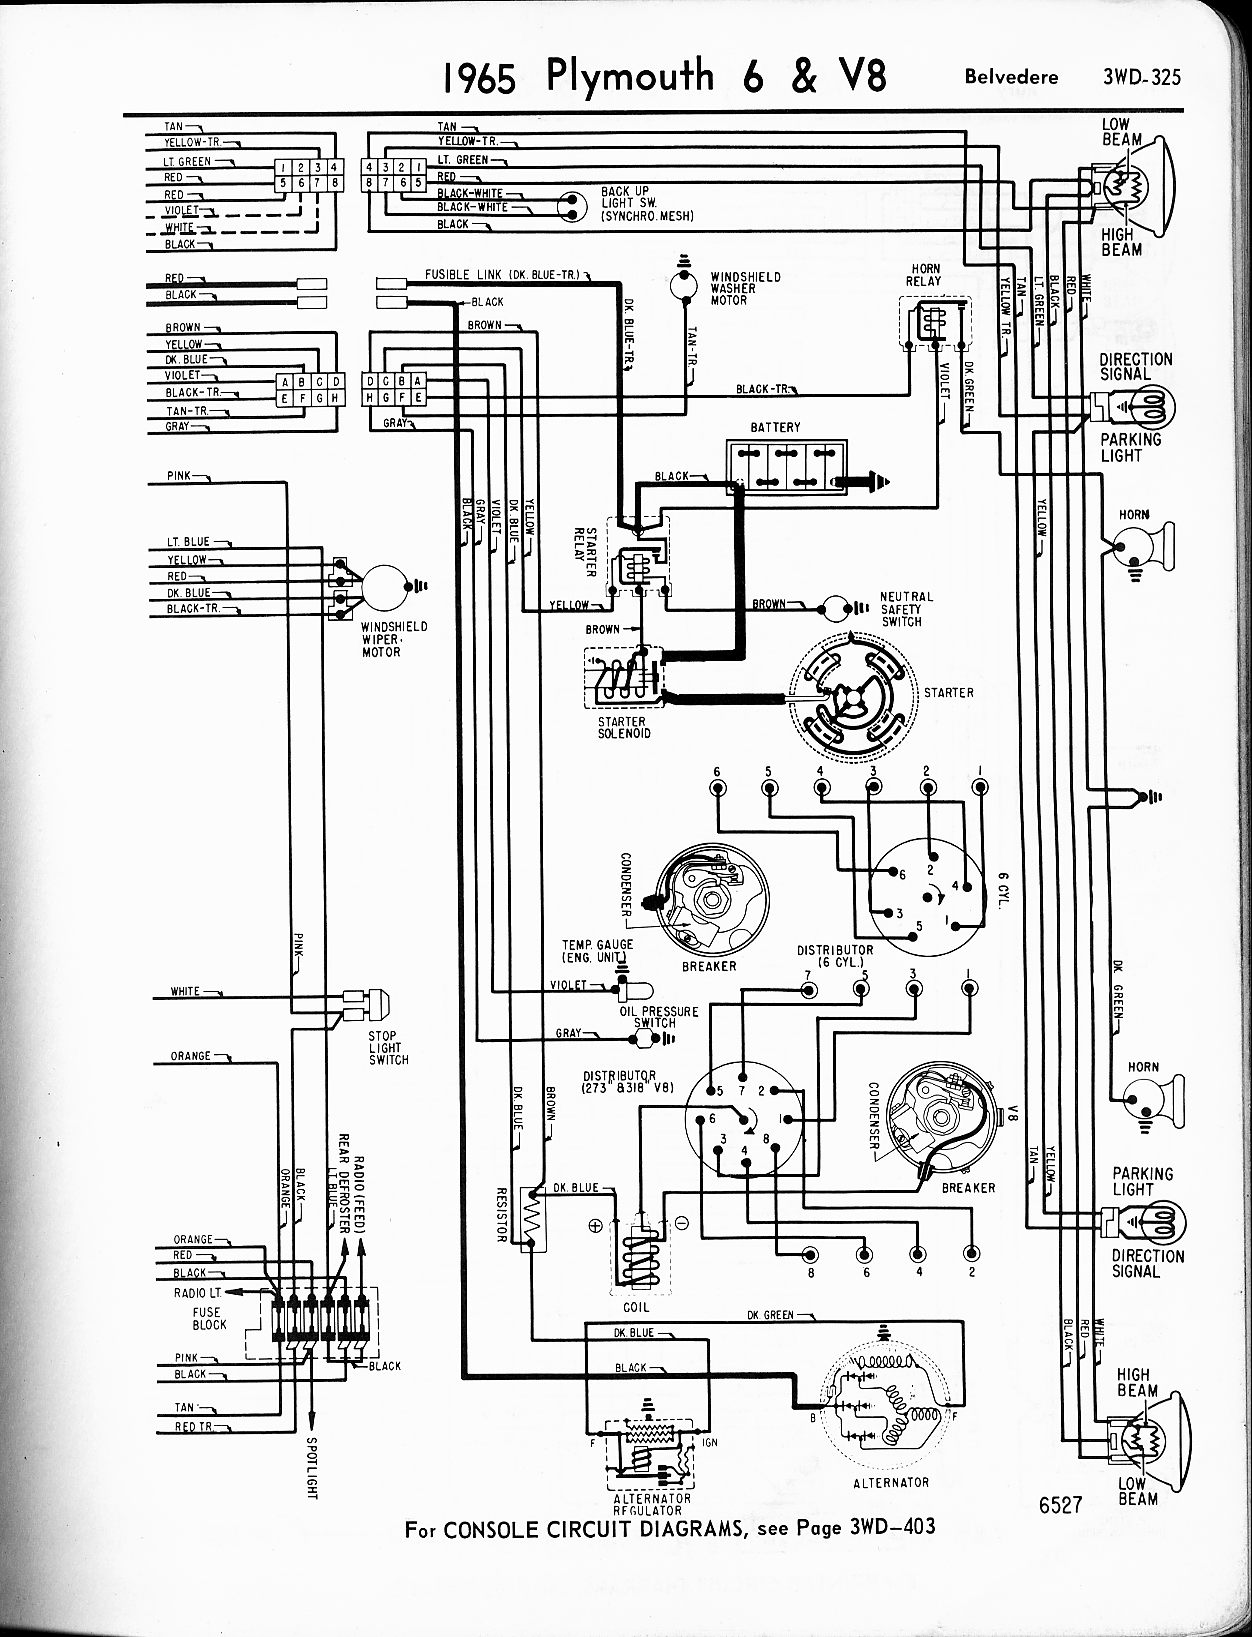 1965 plymouth wiring diagram wiring diagram libraries 1956 1965 plymouth wiring the old car manual project1965 plymouth 6 u0026 v8 belvedere